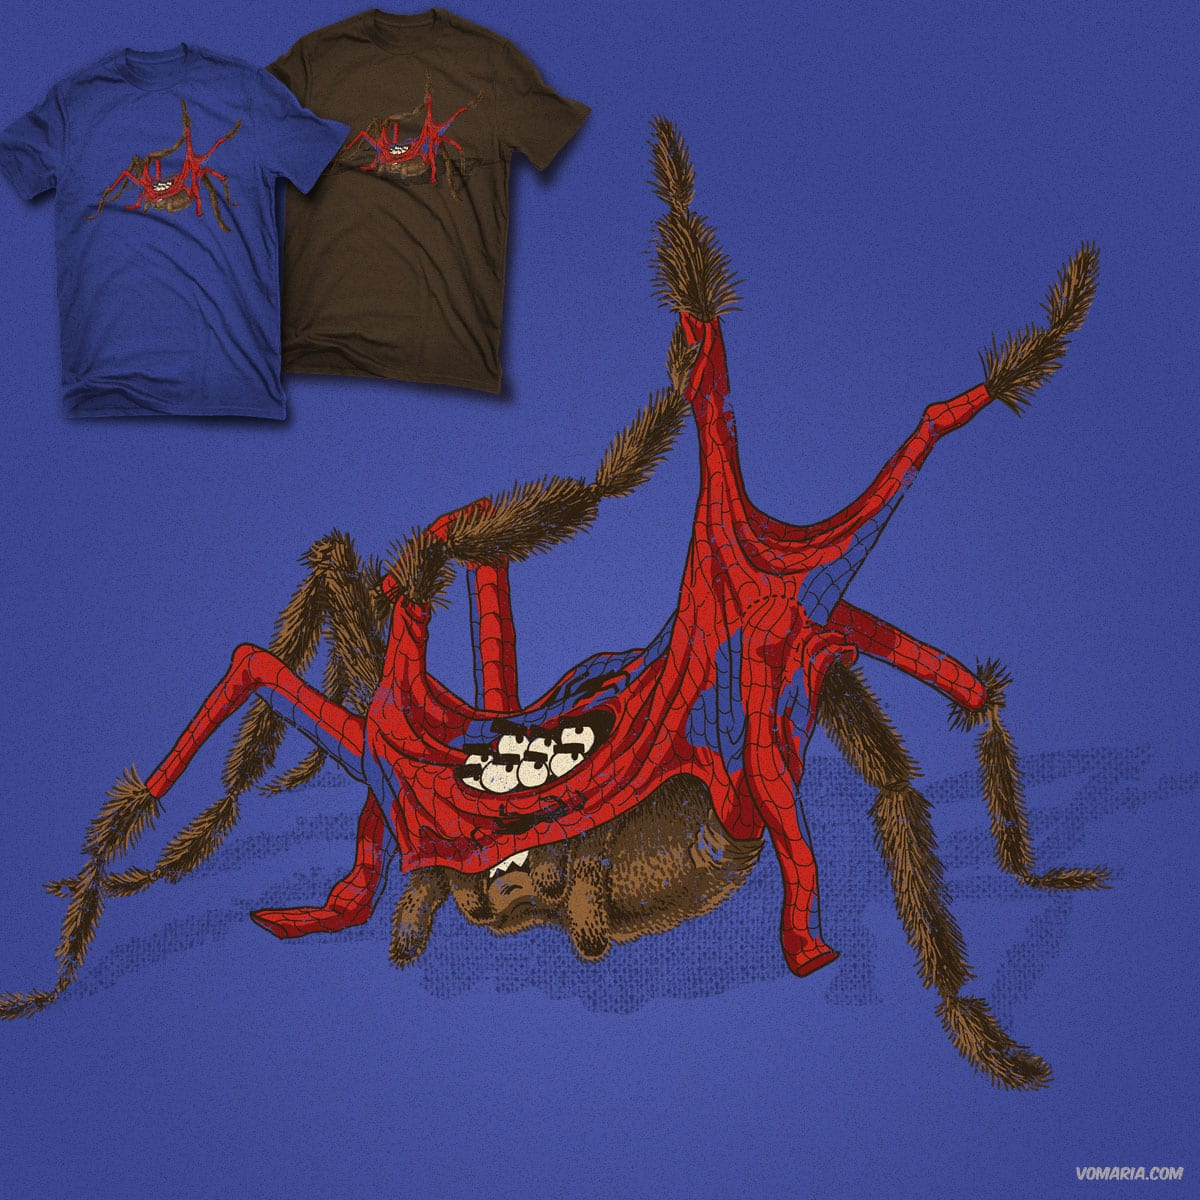 Real Life by vo maria on Threadless